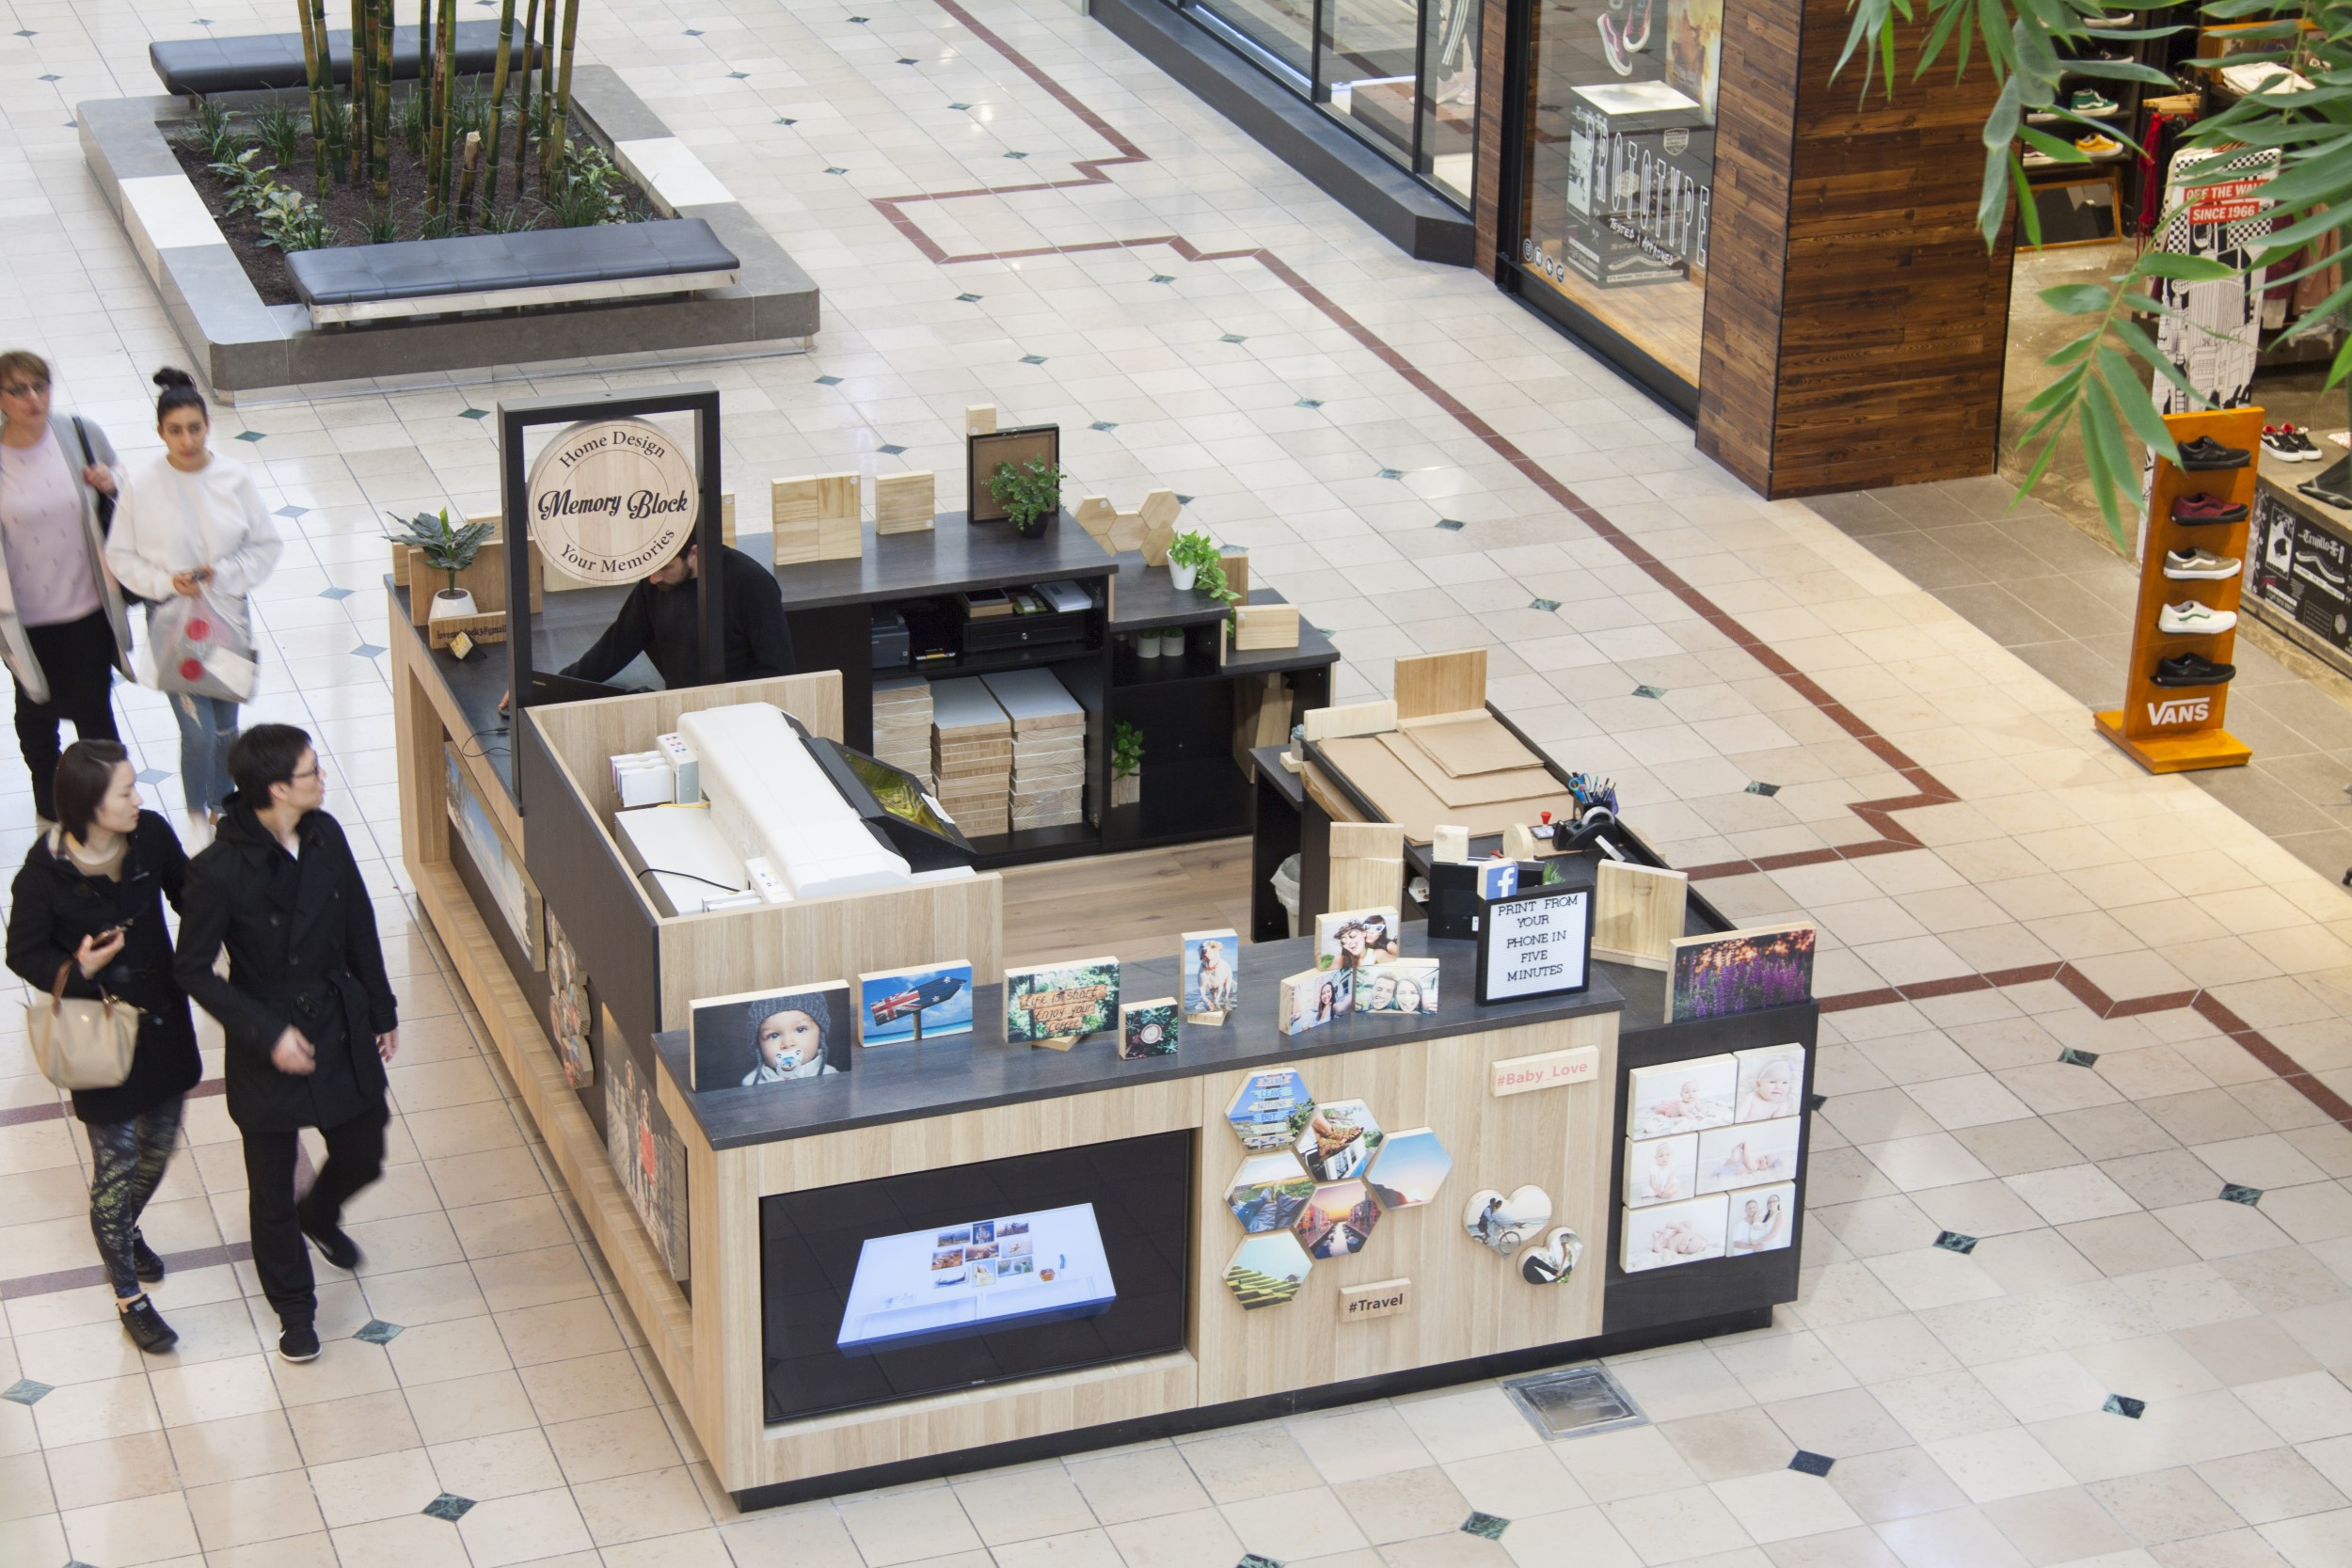 Memory block retail kiosk design and build at chadstone shopping centre